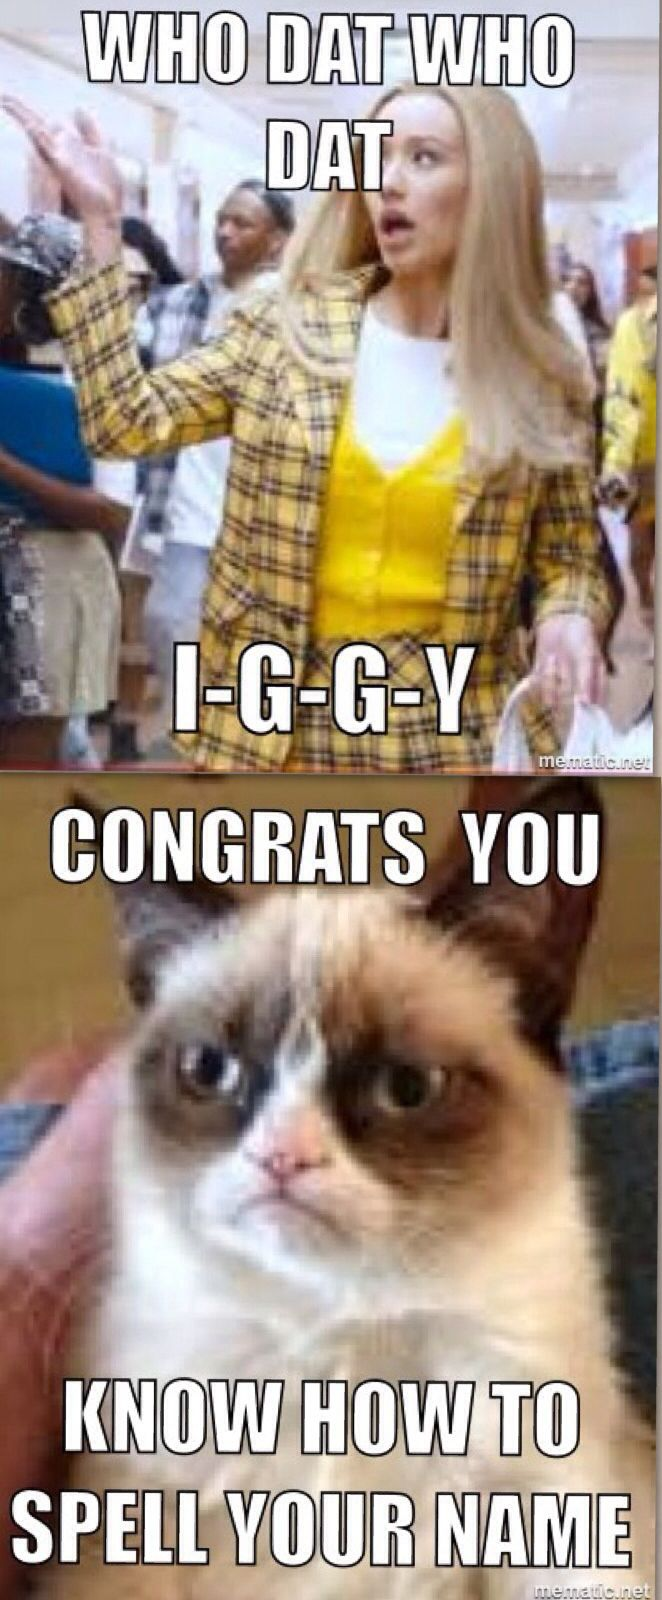 A little funny celebrity humor. Starring Iggy and Grumpy Cat. Pop culture at its finest, don't you agree?